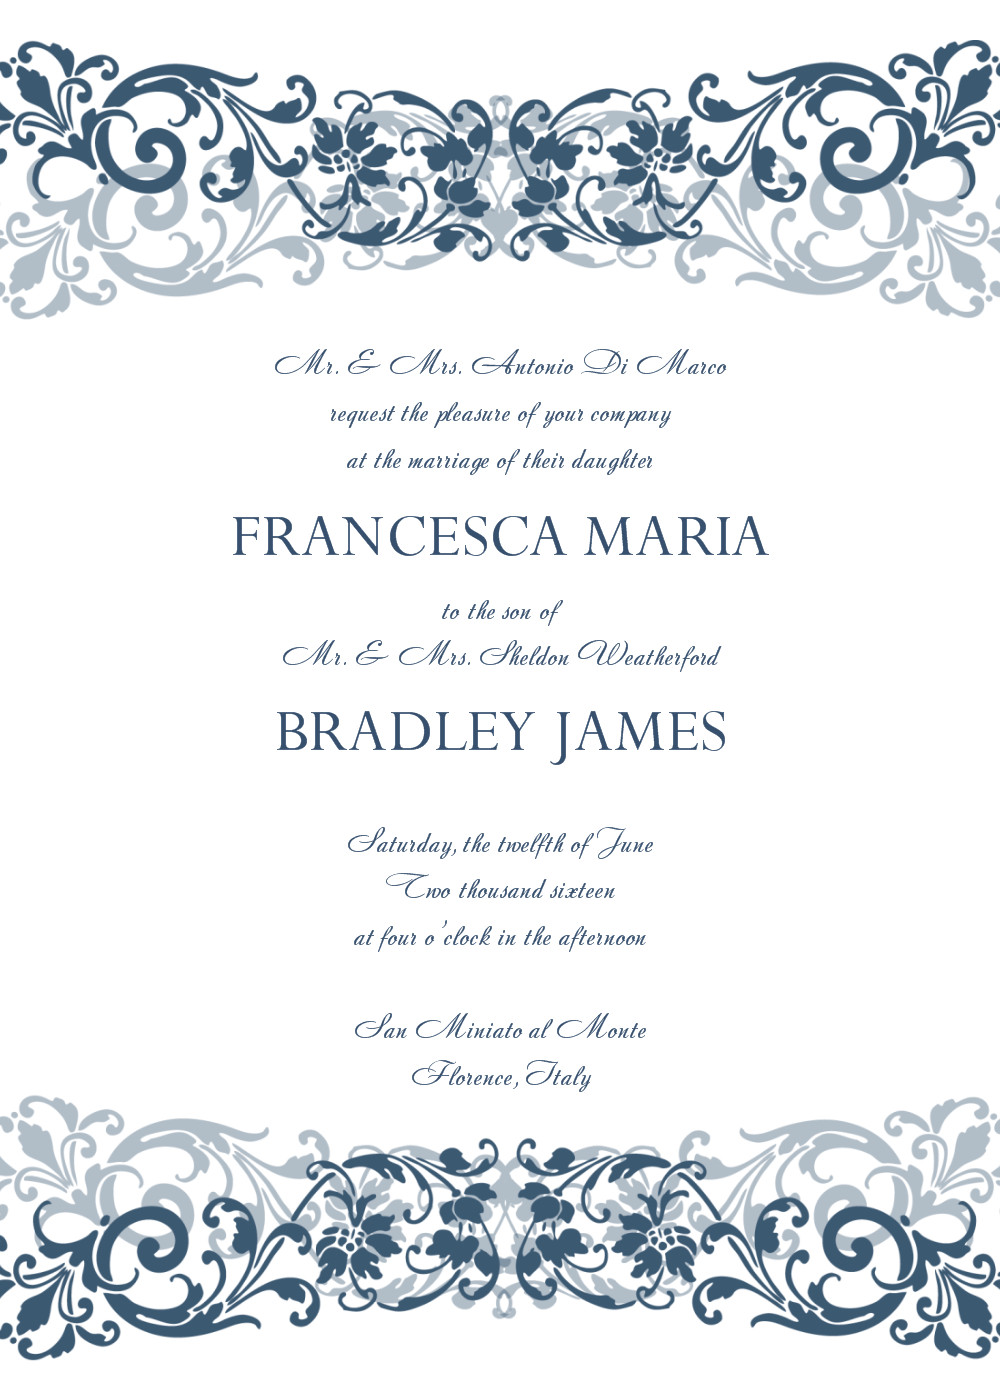 Free Download Invite Templates 8 Free Wedding Invitation Templates Excel Pdf formats